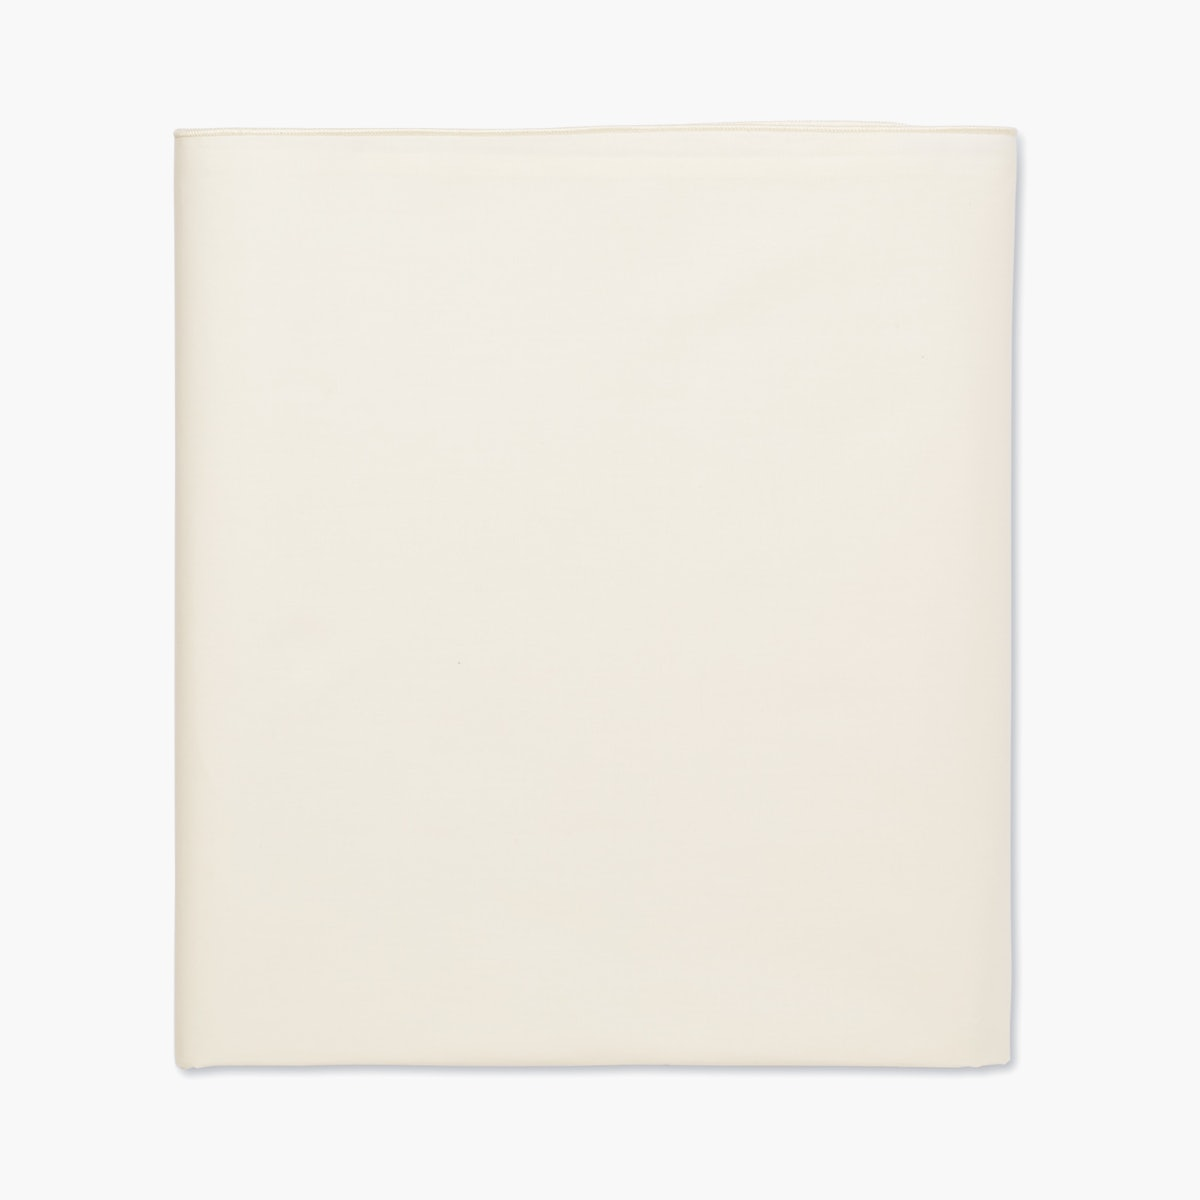 DWR Flat Sheet - Percale